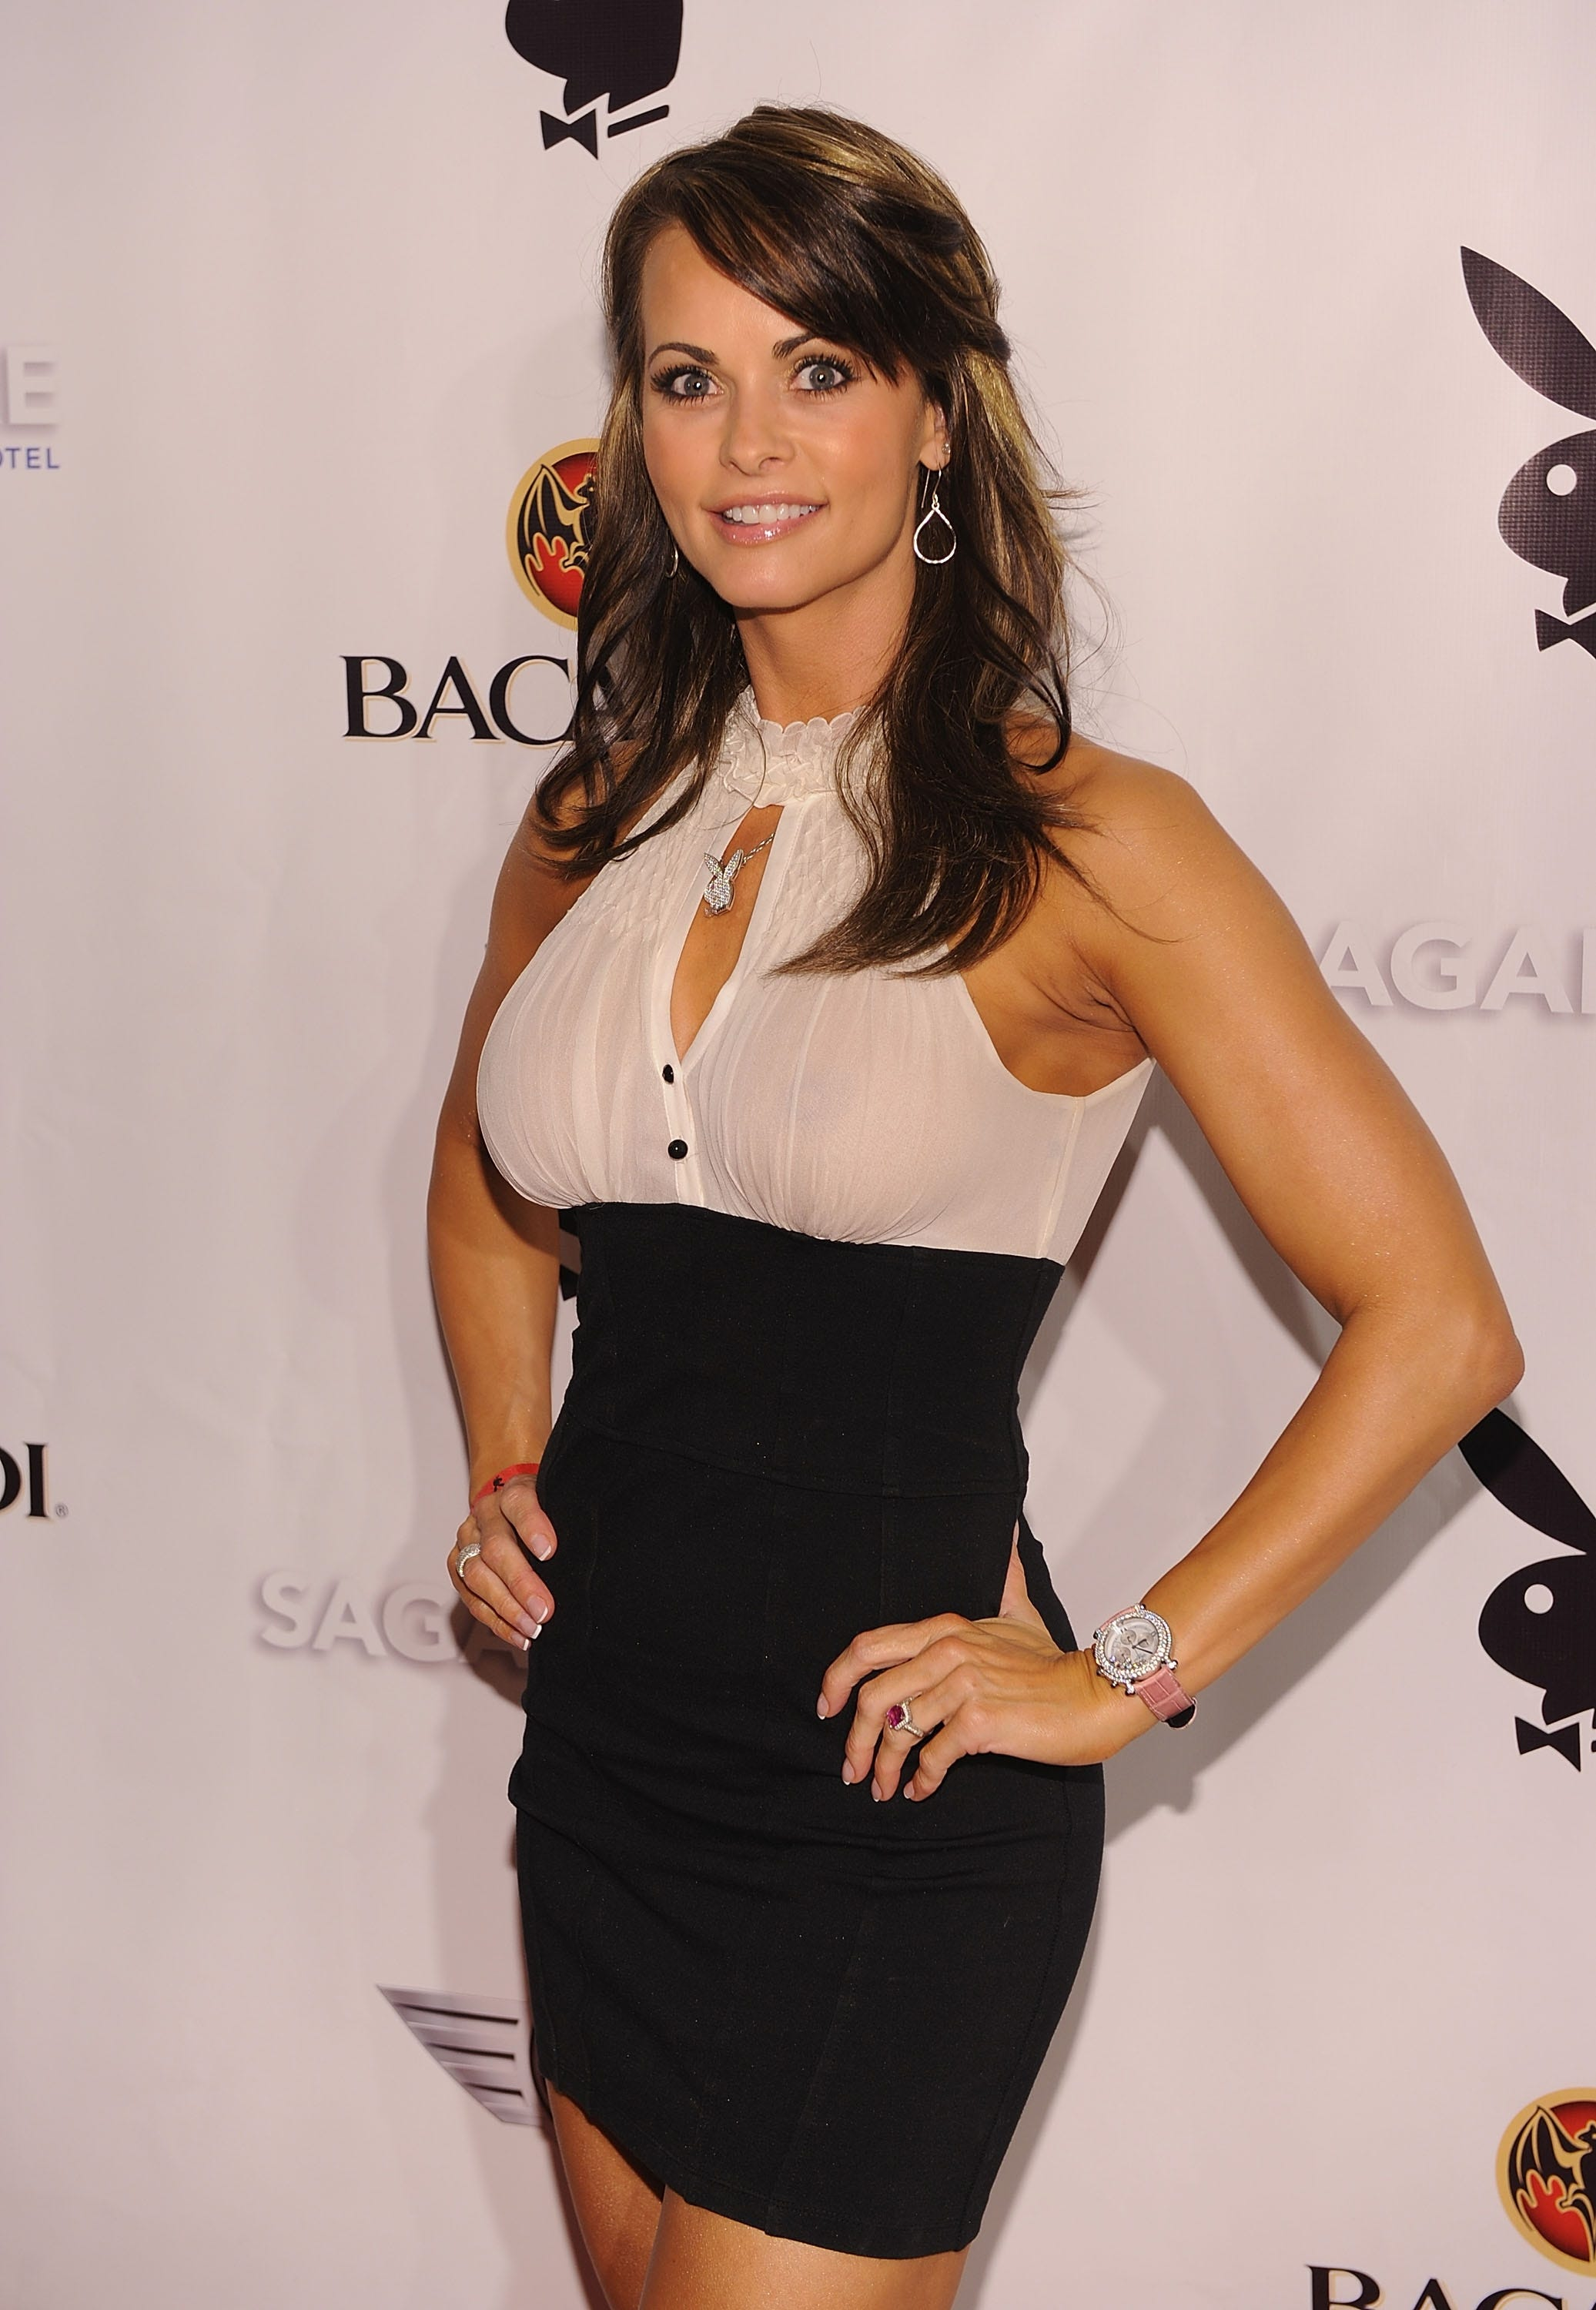 Karen McDougal claims she had an affair with Donald Trump for several  months while he was married to Melania Trump.